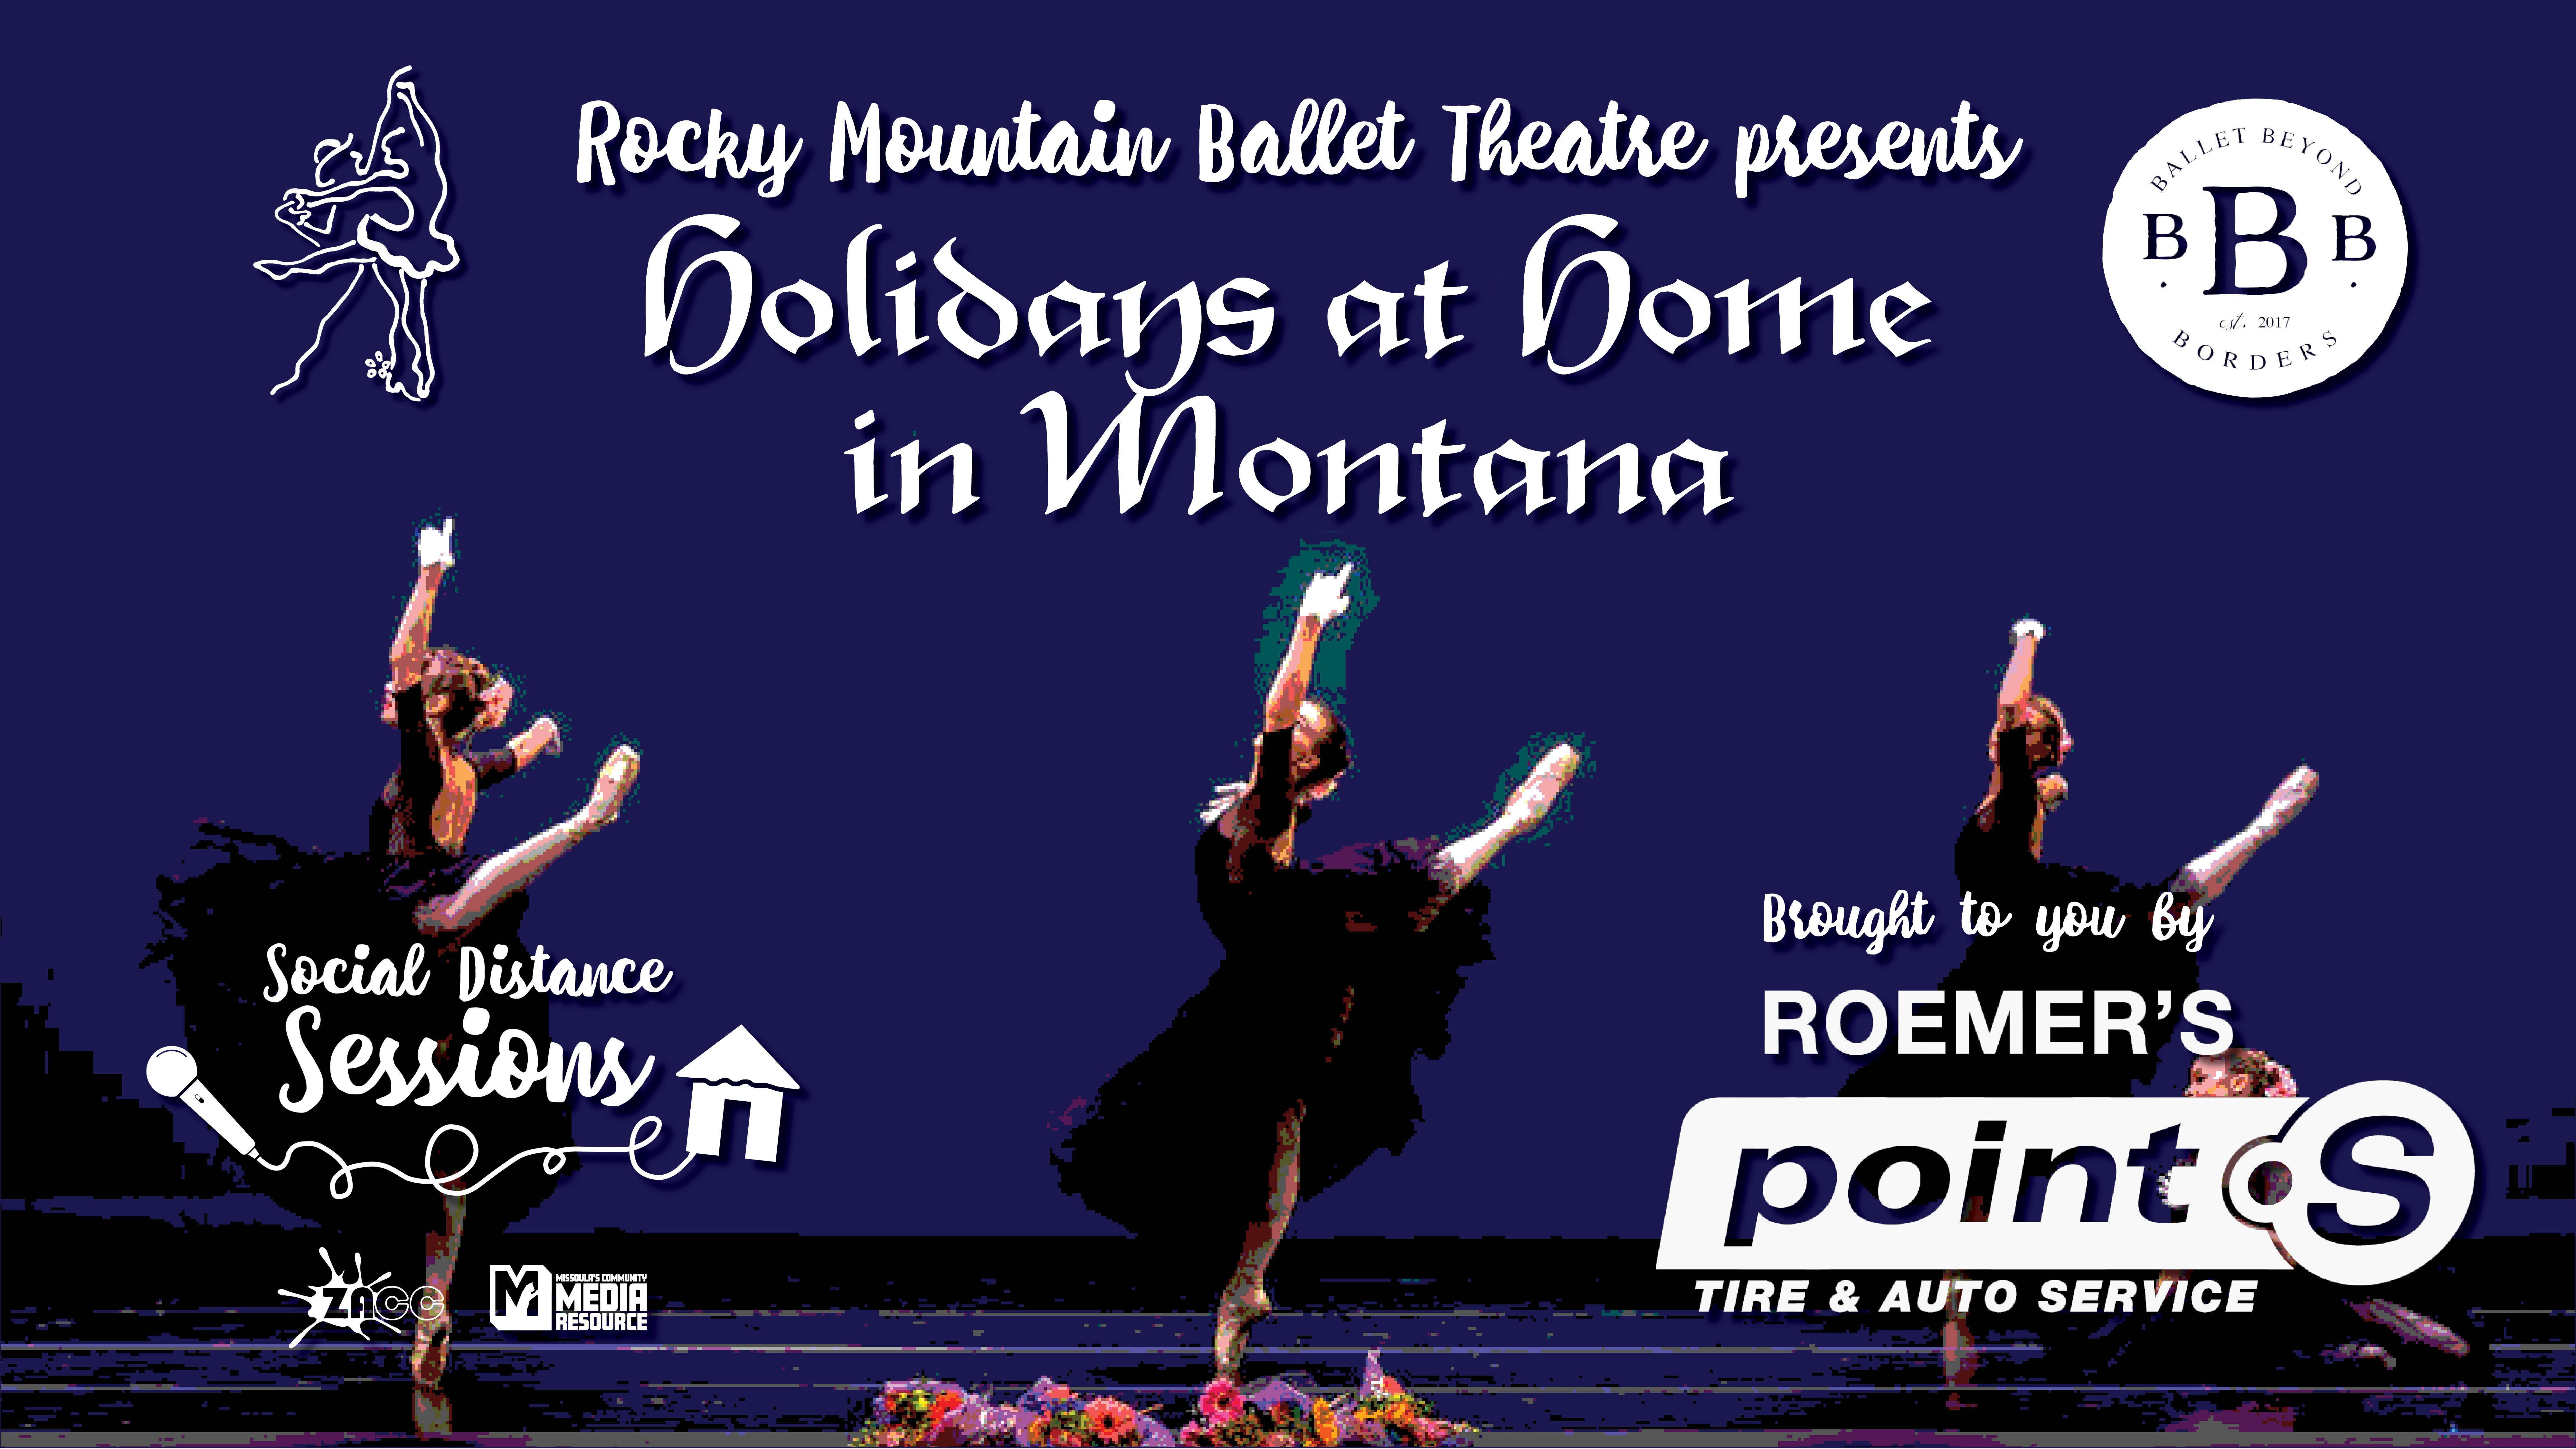 Social Distance Sessions: Rocky Mountain Ballet Theatre presents Holidays at Home in Montana